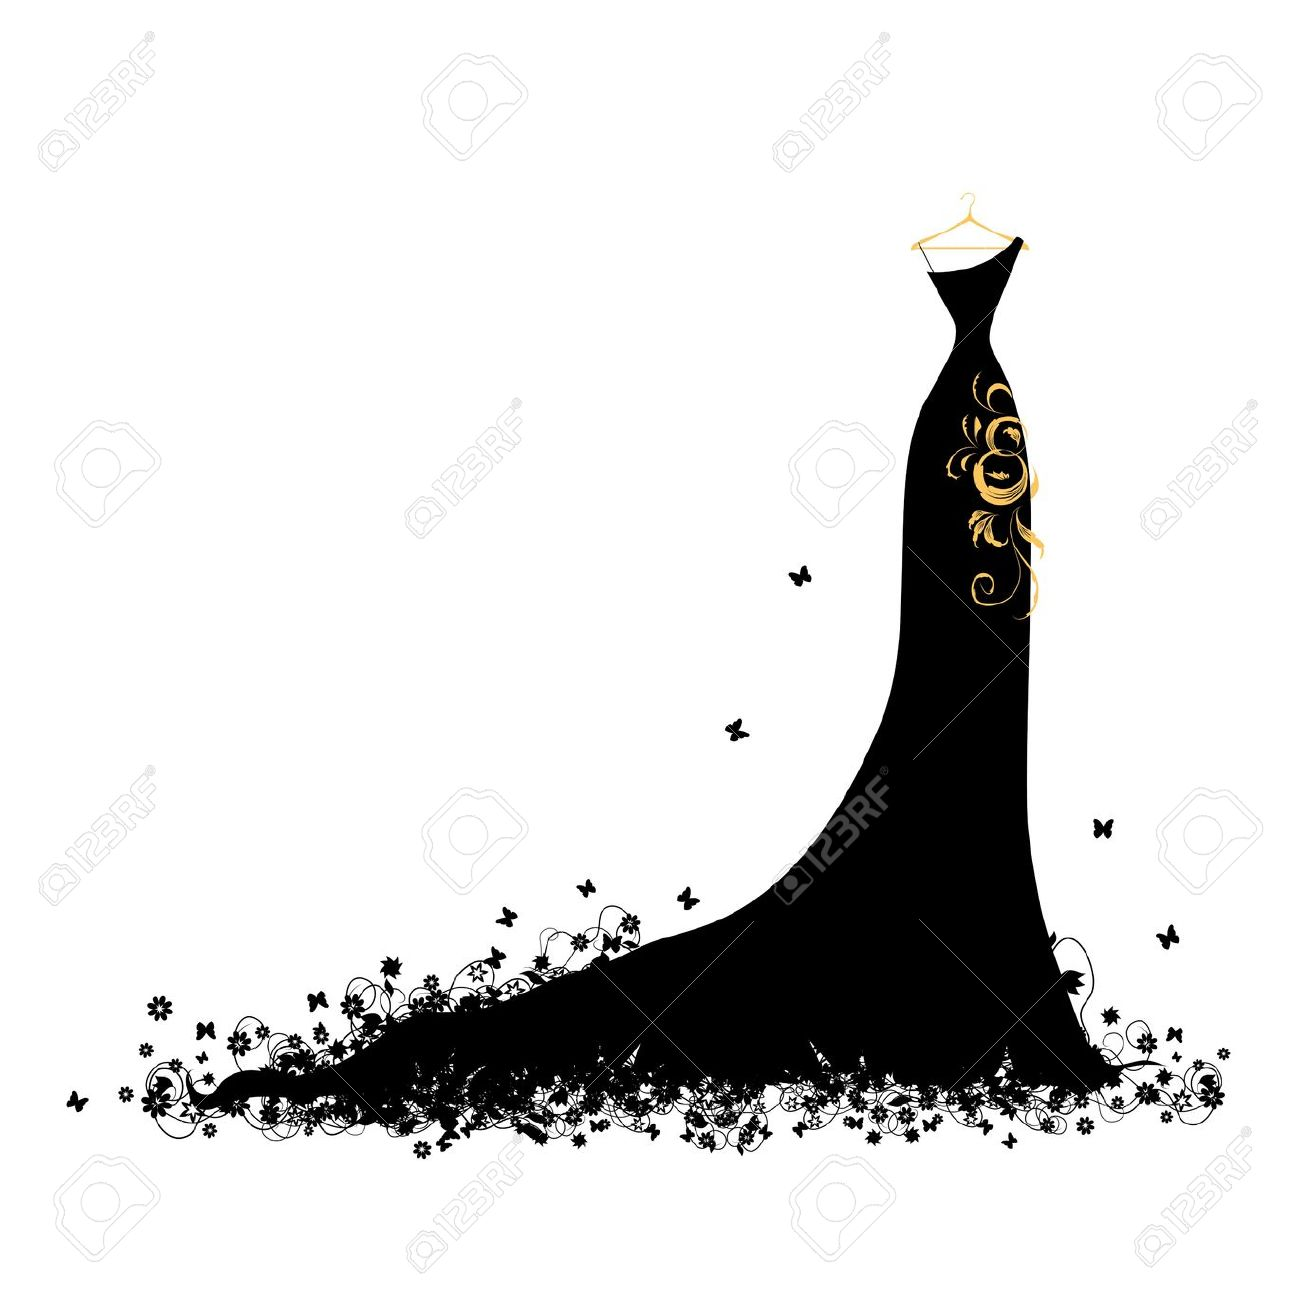 Gown clipart fashion dress Silhouette lady lady Google Search